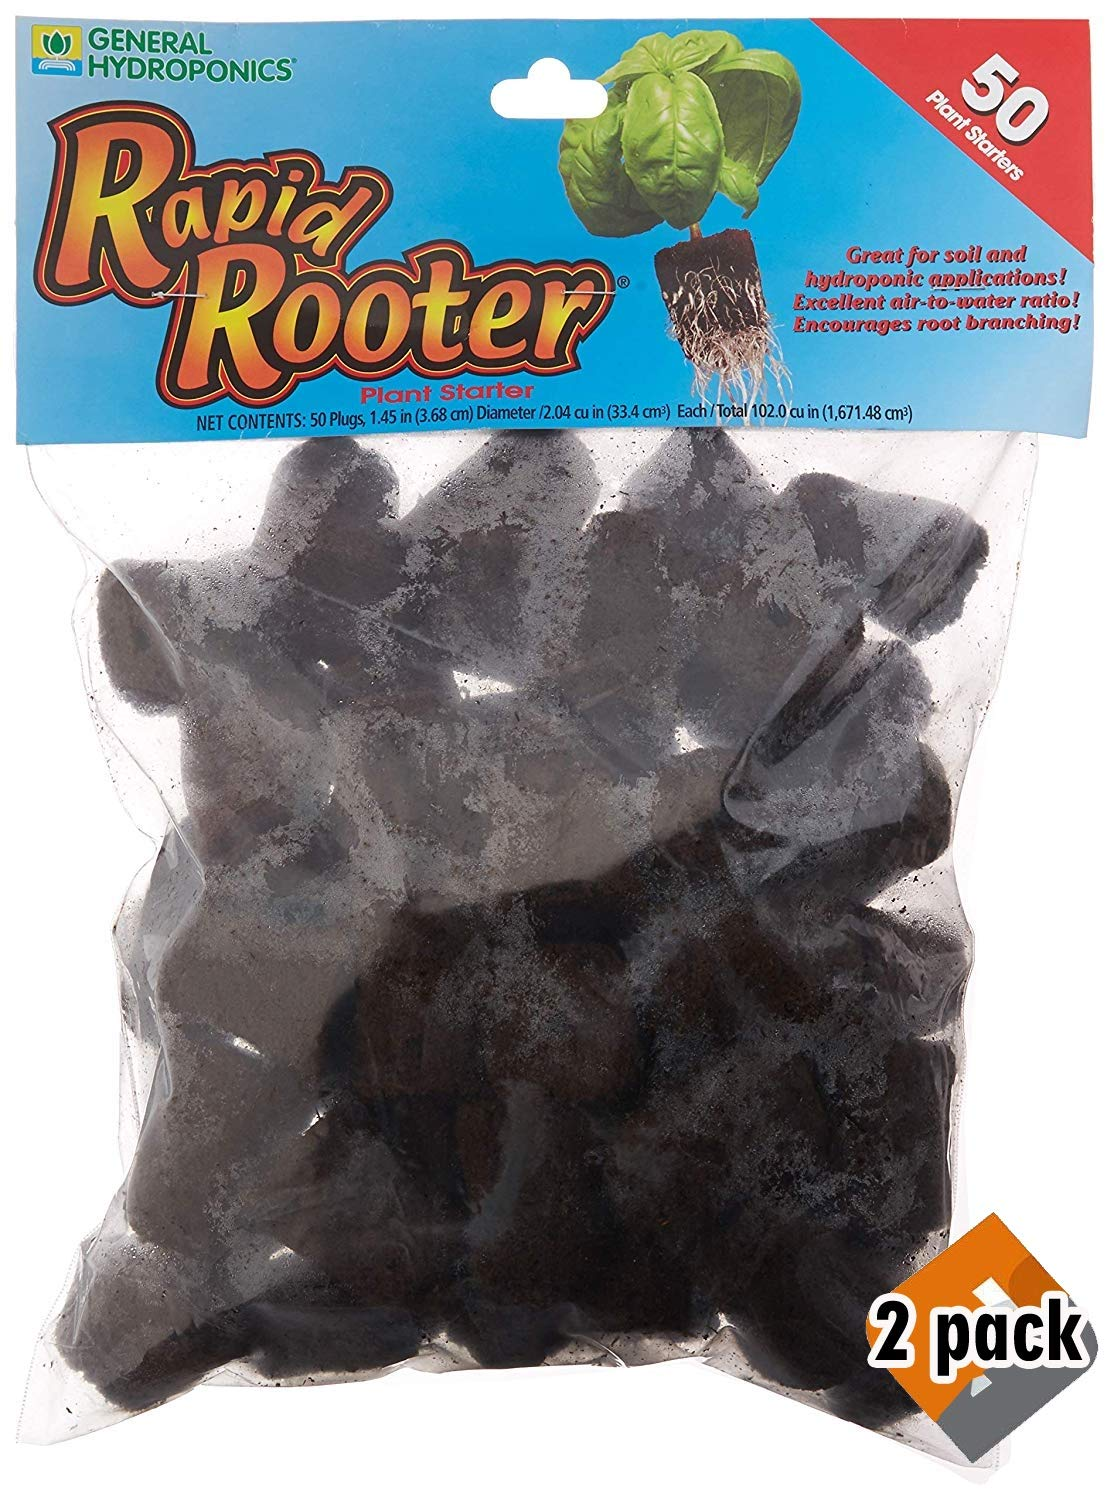 General Hydroponics Rapid Rooter Replacement Plugs 50 Count, Pack 2